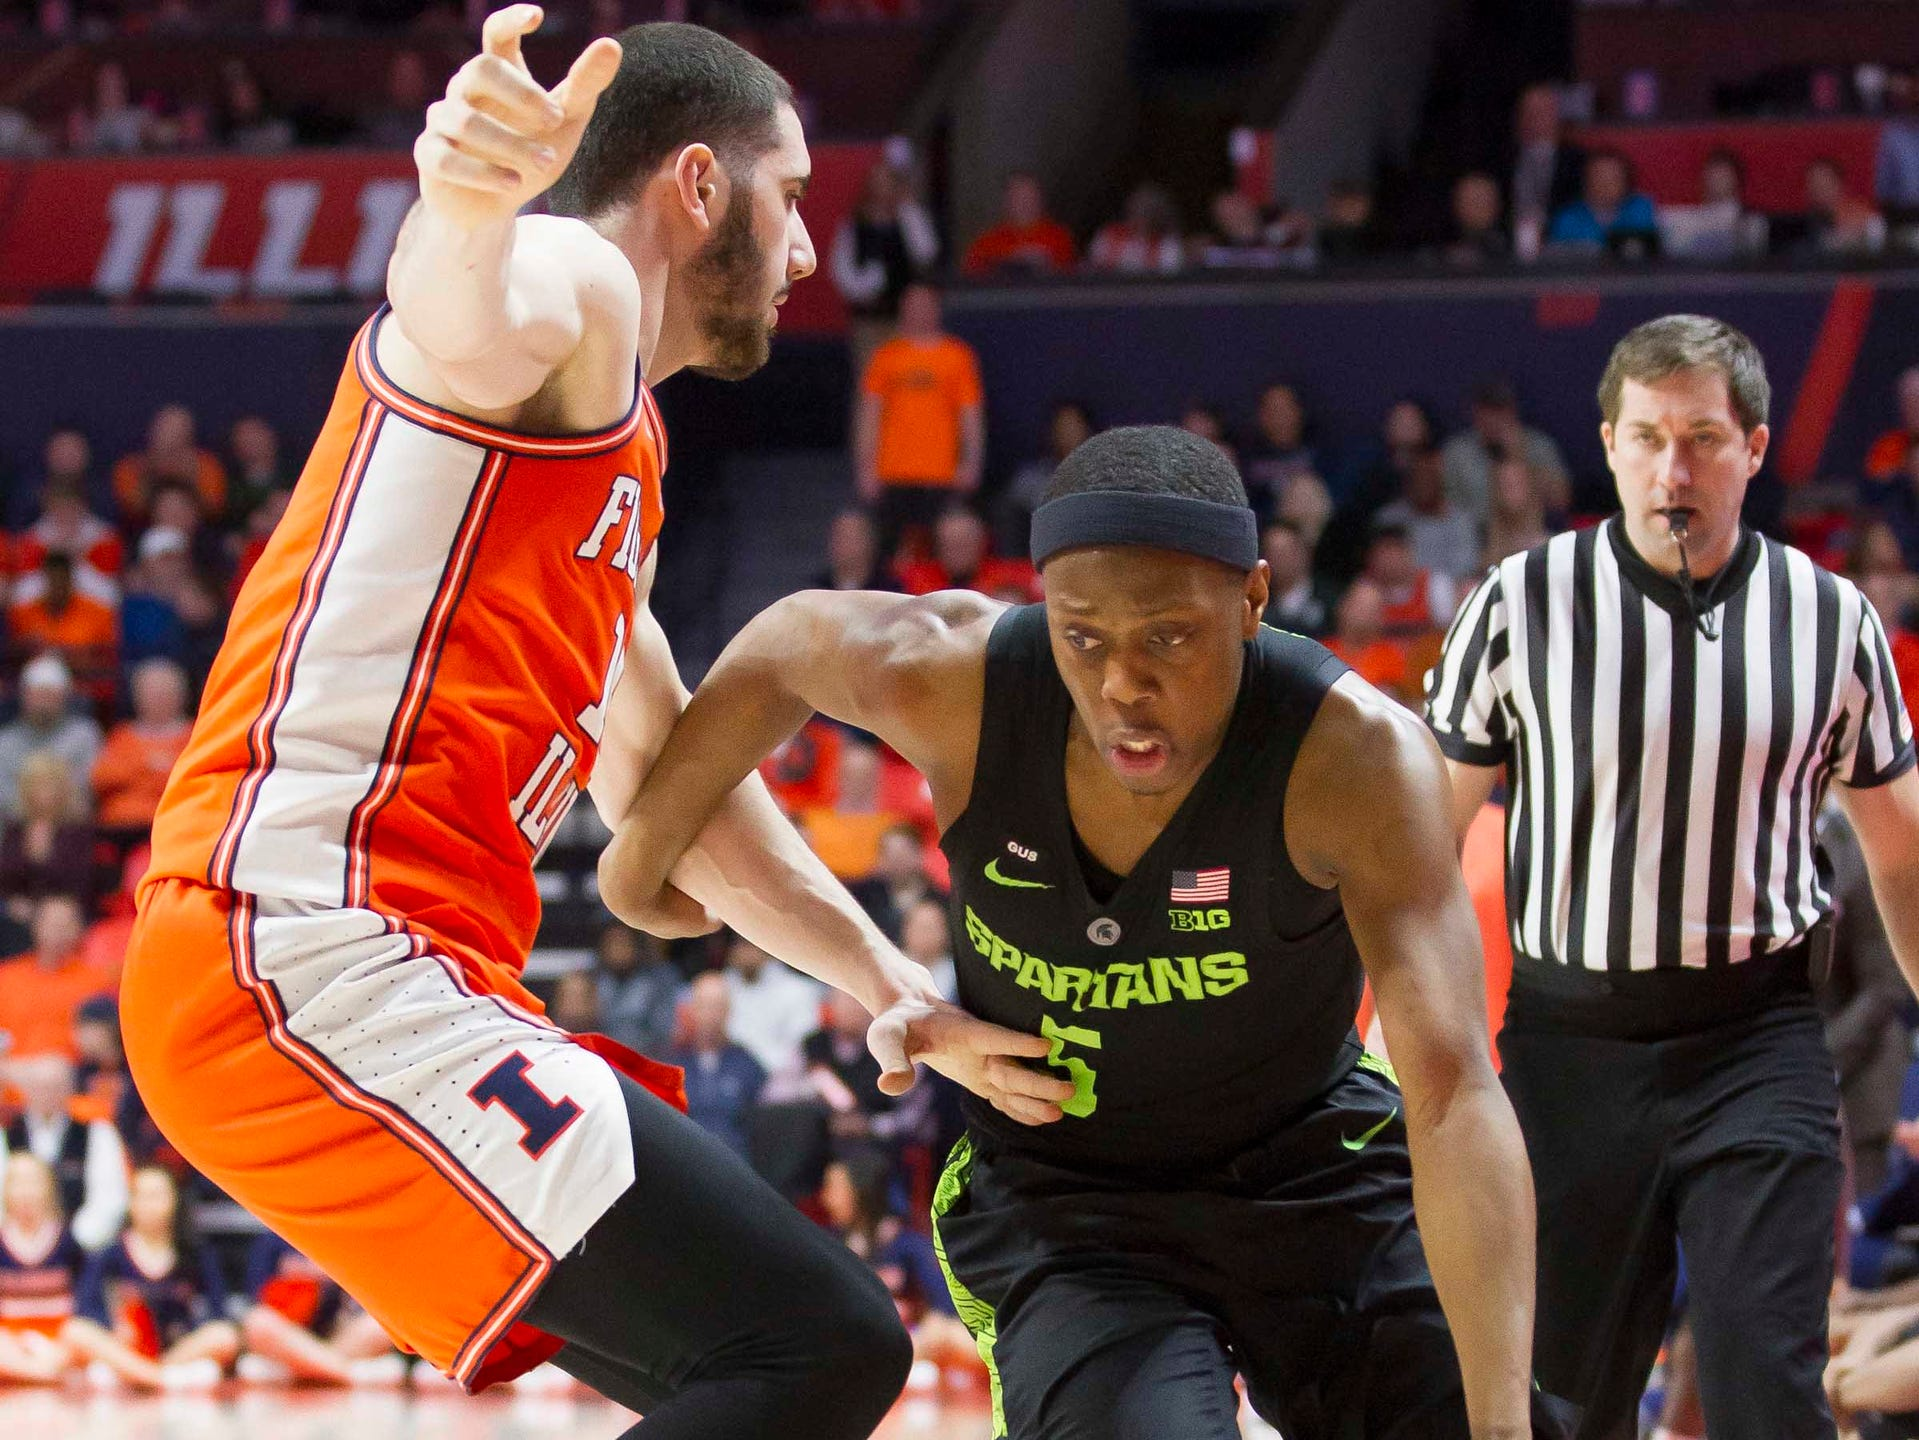 Michigan State guard Cassius Winston drives past Illinois forward Giorgi Bezhanishvili during the second half of MSU's 79-74 loss to Illinois on Tuesday, Feb. 5, 2019, in Champaign, Ill.